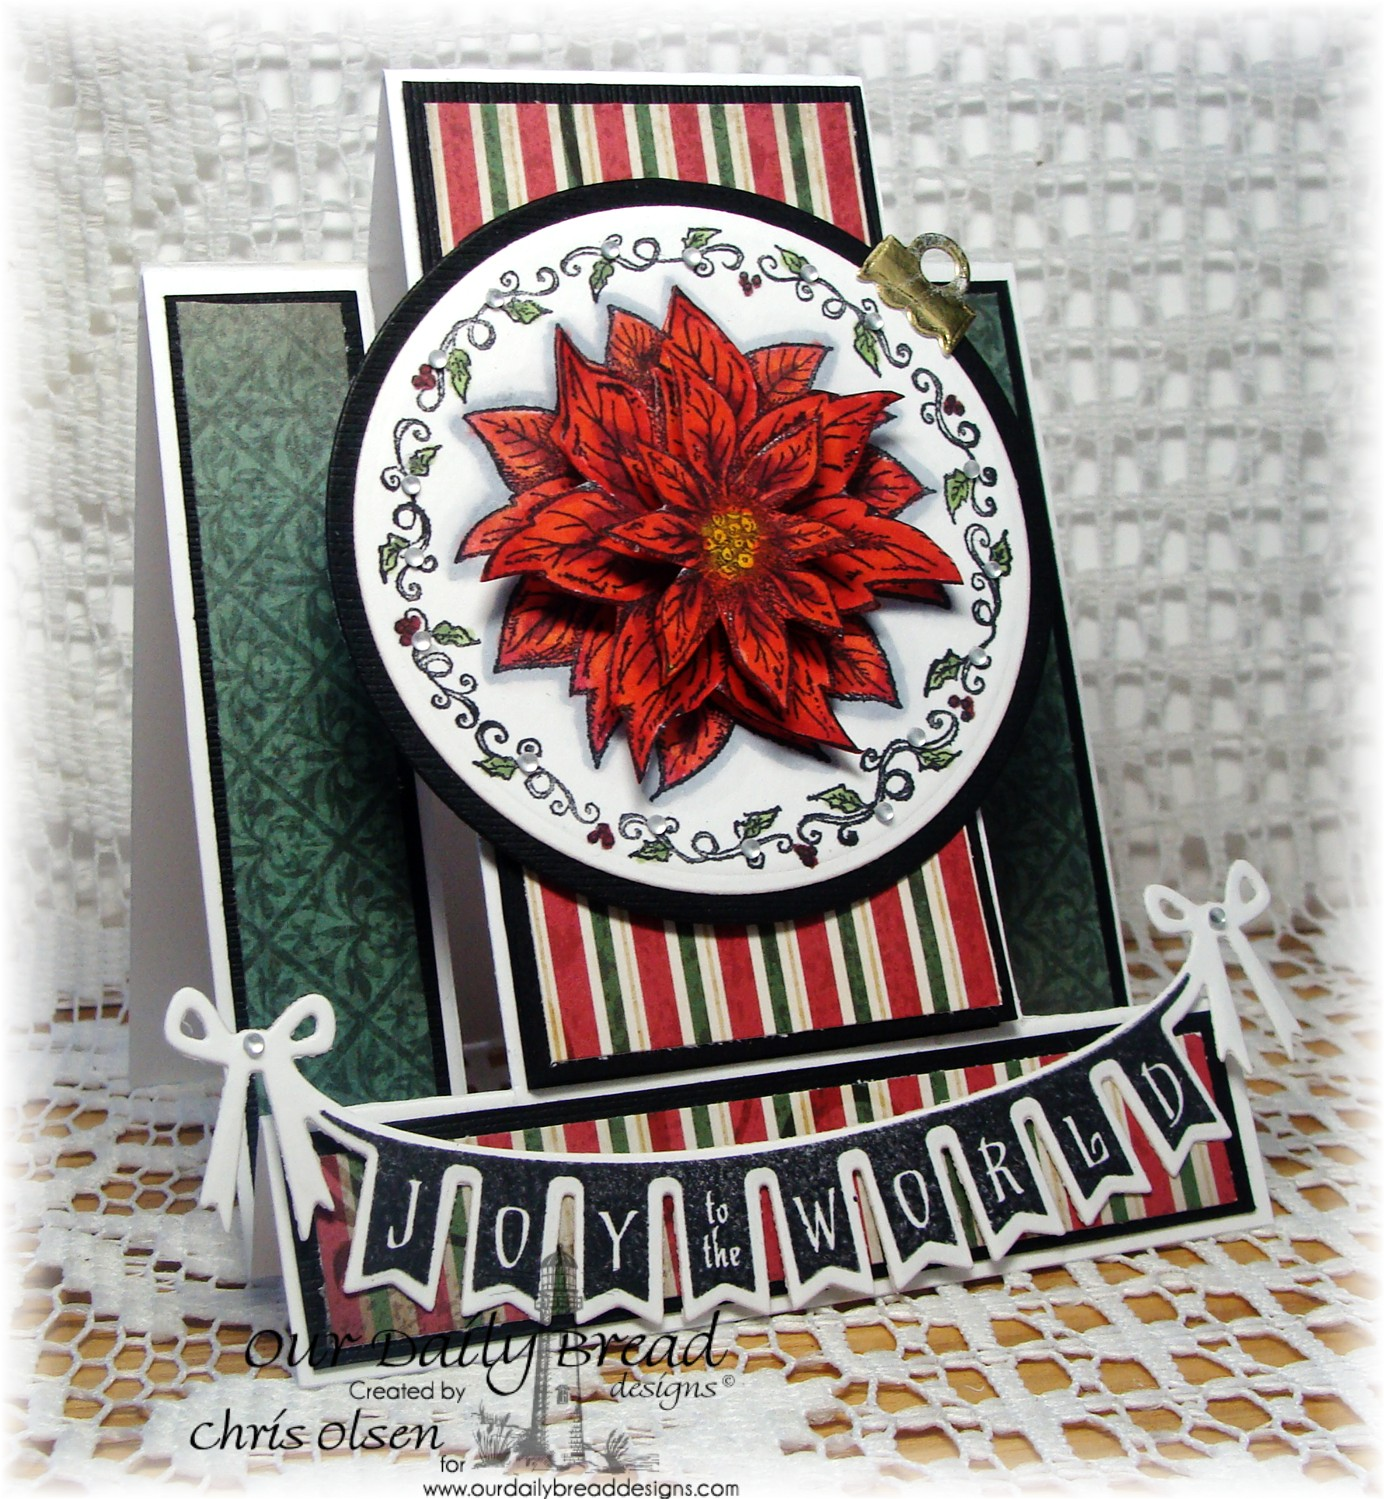 Stamps - Our Daily Bread Designs Poinsettia Ornament, Christmas Pennant Swag, ODBD Custom Pennant Swag Die, ODBD Custom Matting Circles Dies, ODBD Custom Circle Ornaments Die, ODBD Christmas Paper Collection 2013